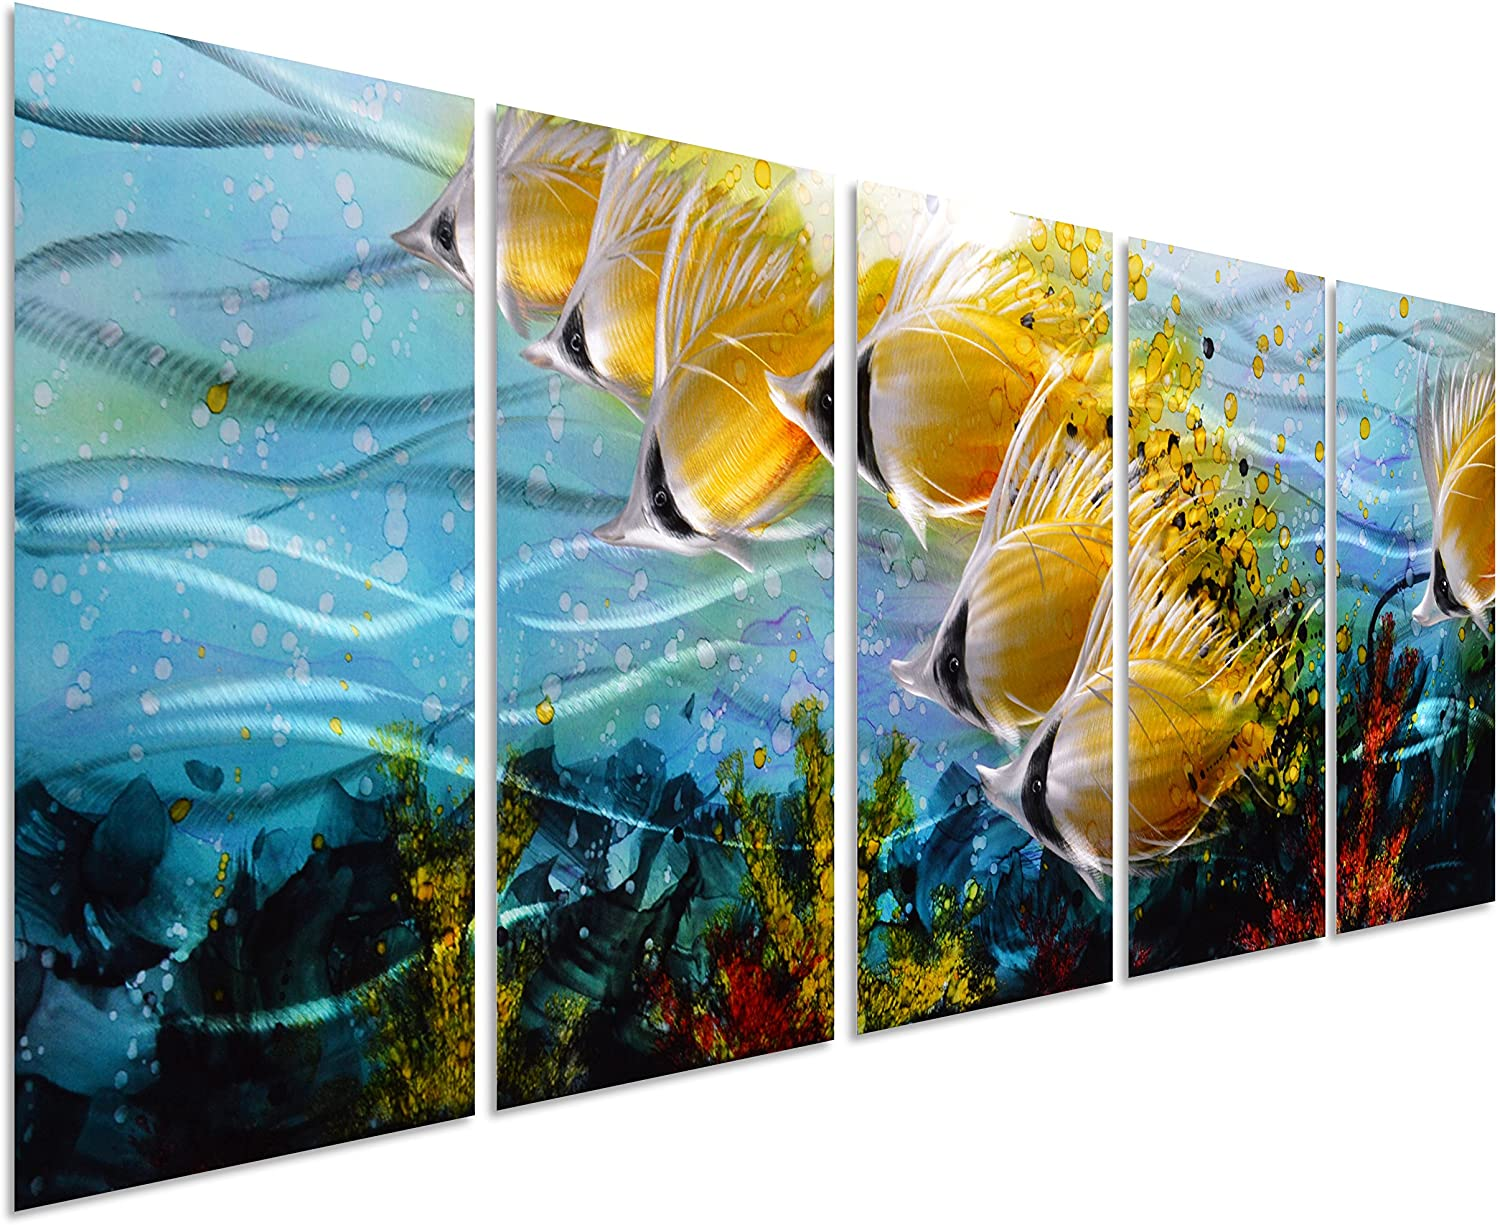 """Blue Tropical School of Fish Metal Wall Art, Large Metal Wall Art in Modern  Ocean Design, 3D Wall Art for Modern and Contemporary Décor, 5-Panels, 24""""x  64"""", Metal Wall Décor Works Indoors"""